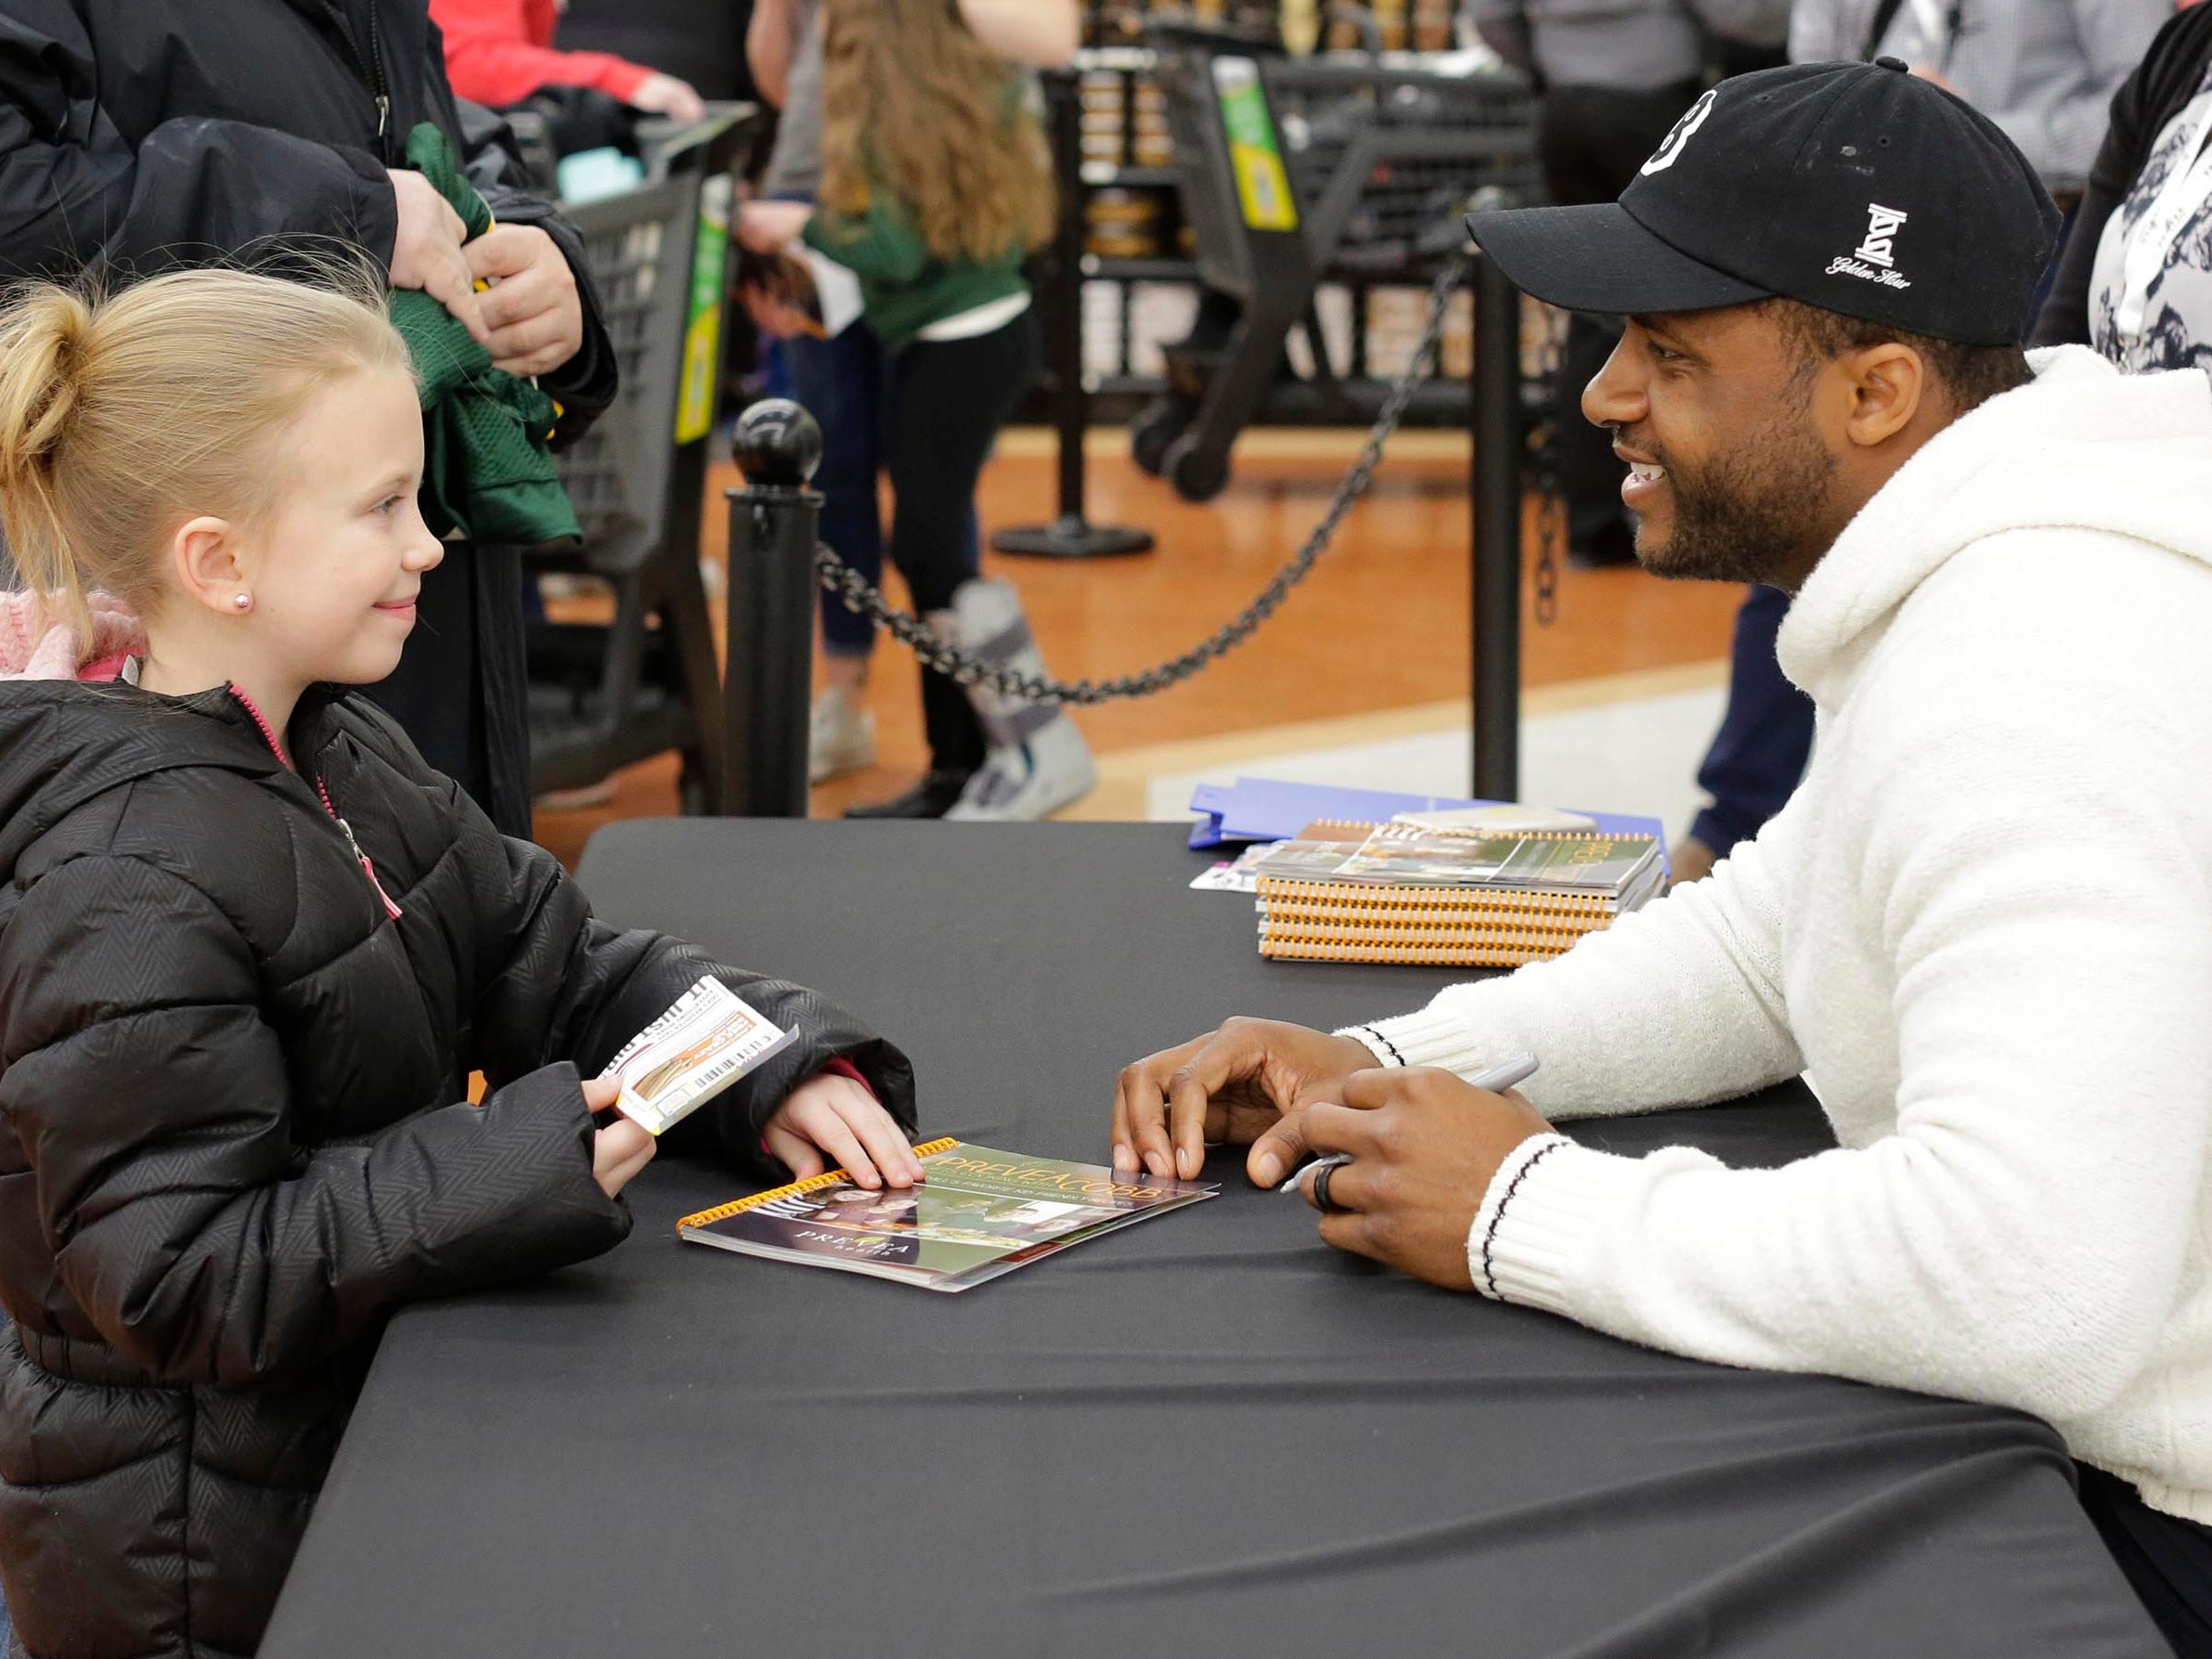 """Mackenzie Ratliff, 7, of Oostburg, Wis., smiles at Randall Cobb after he signed a cookbook called, """"Prevea Gets Cooking with Cobb: Randall's Favorite Kid-Friendly Recipes"""", Thursday, February 28, 2019, in Sheboygan, Wis."""